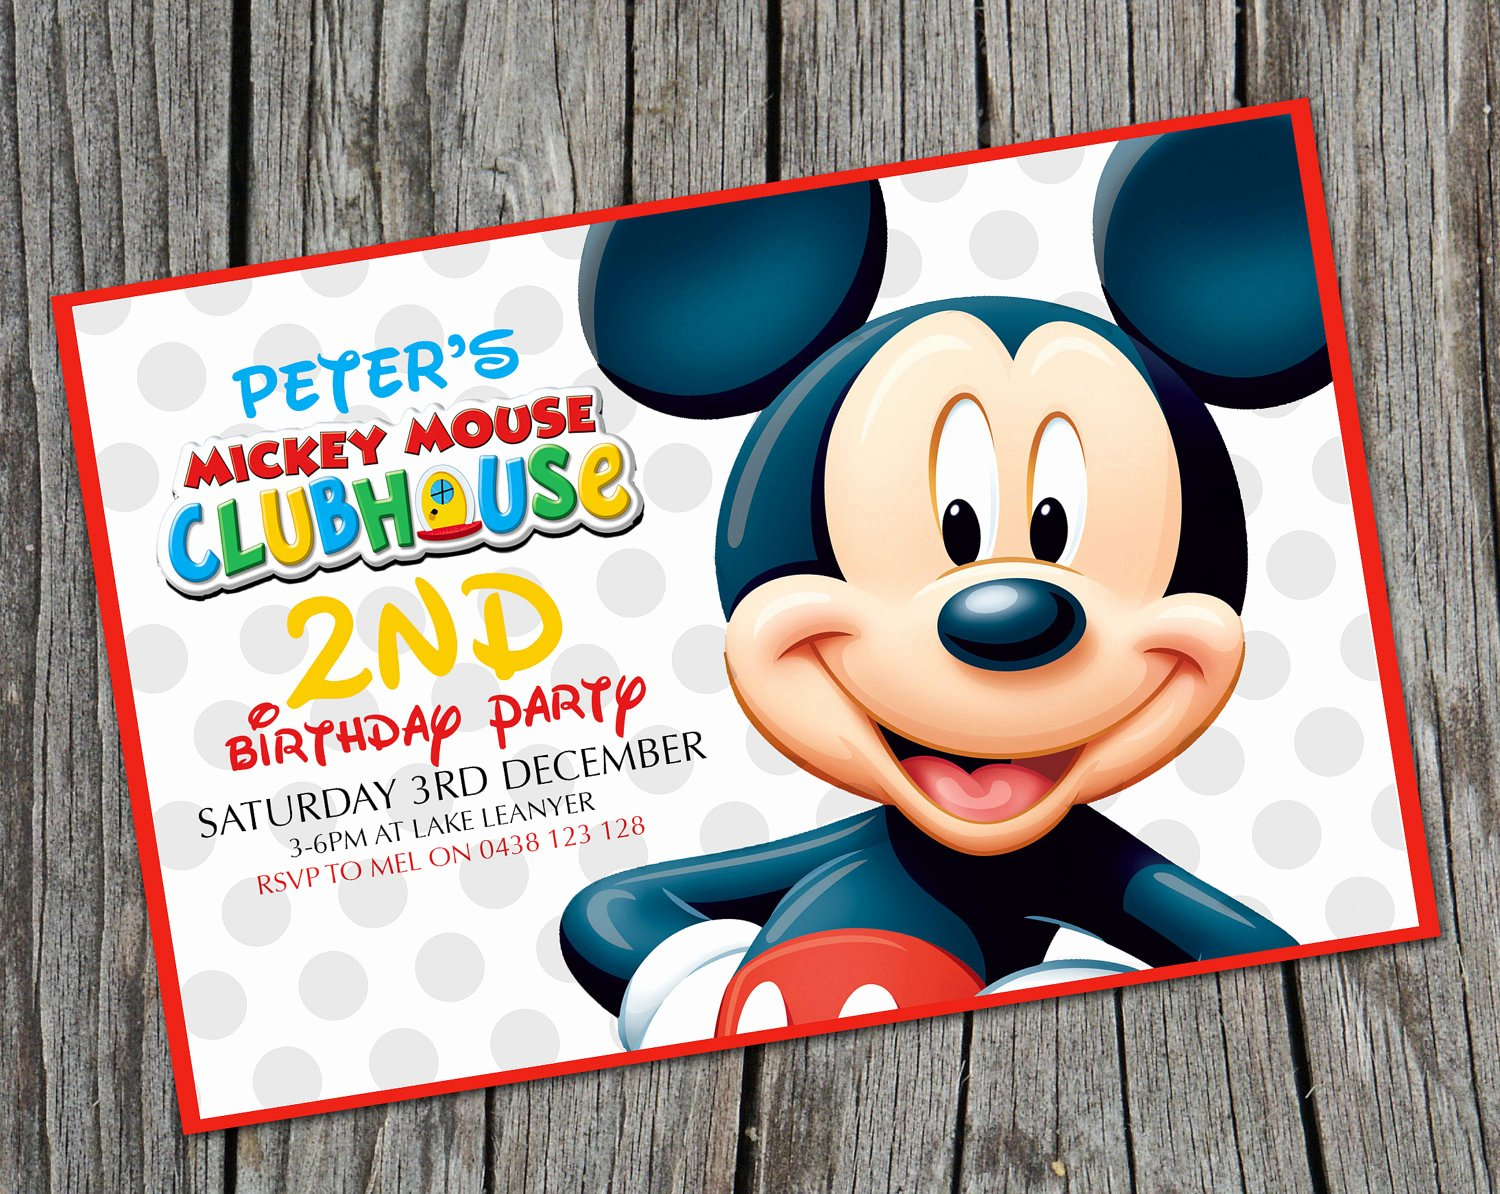 Mickey Mouse Clubhouse Invitation Inspirational Kids Birthday Invitation Mickey Mouse Clubhouse Modern